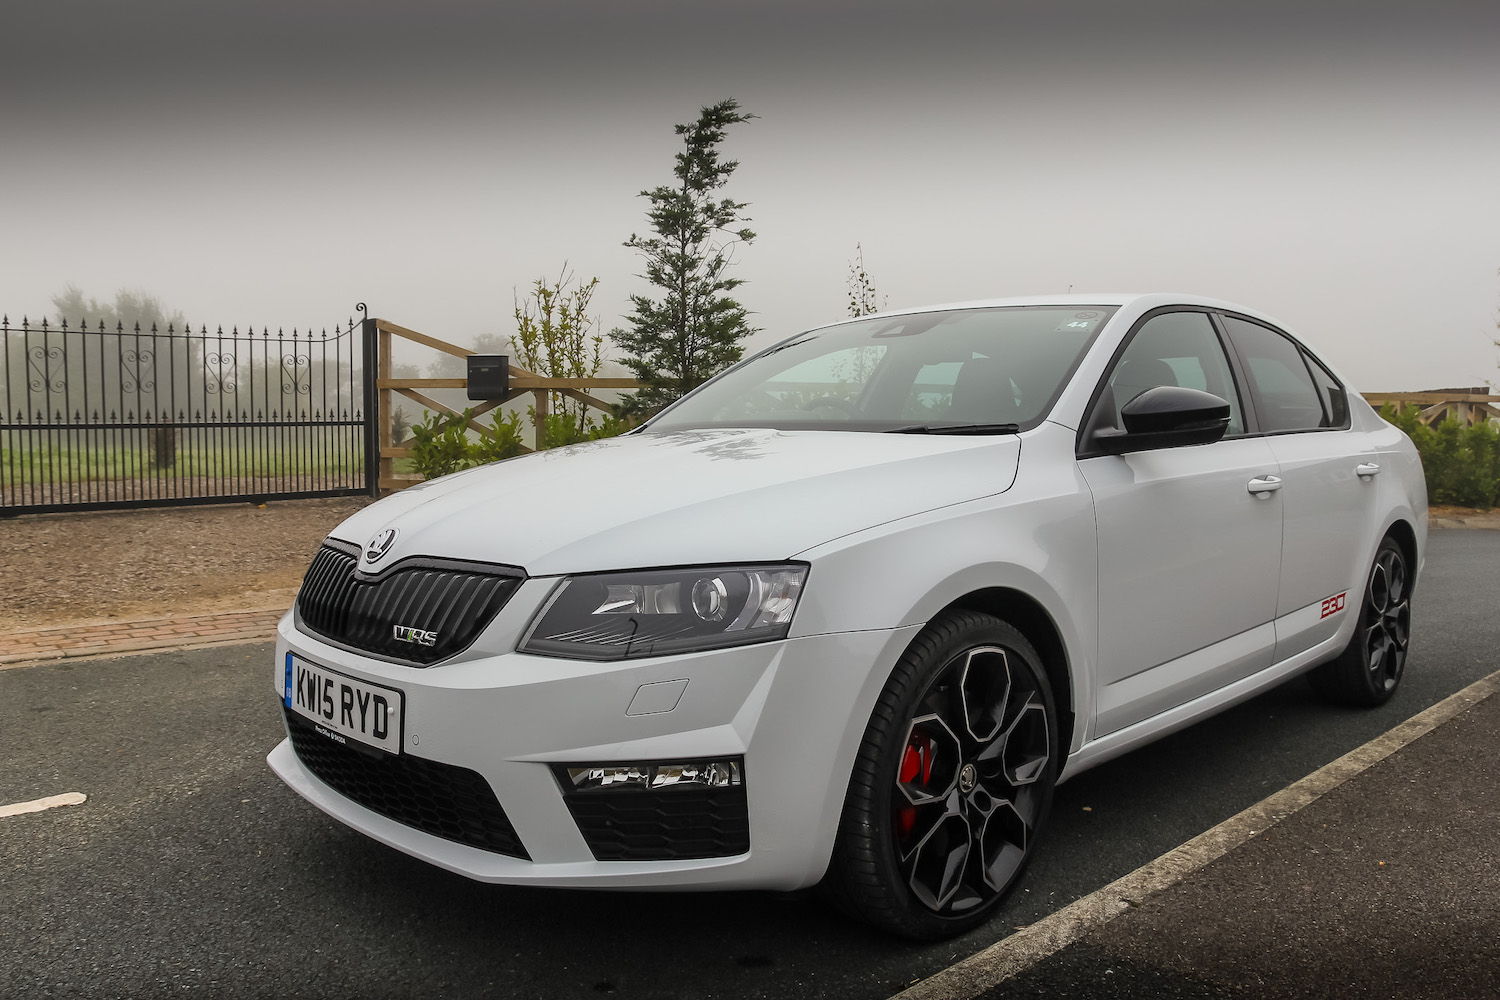 skoda octavia vrs 230 highlights video. Black Bedroom Furniture Sets. Home Design Ideas